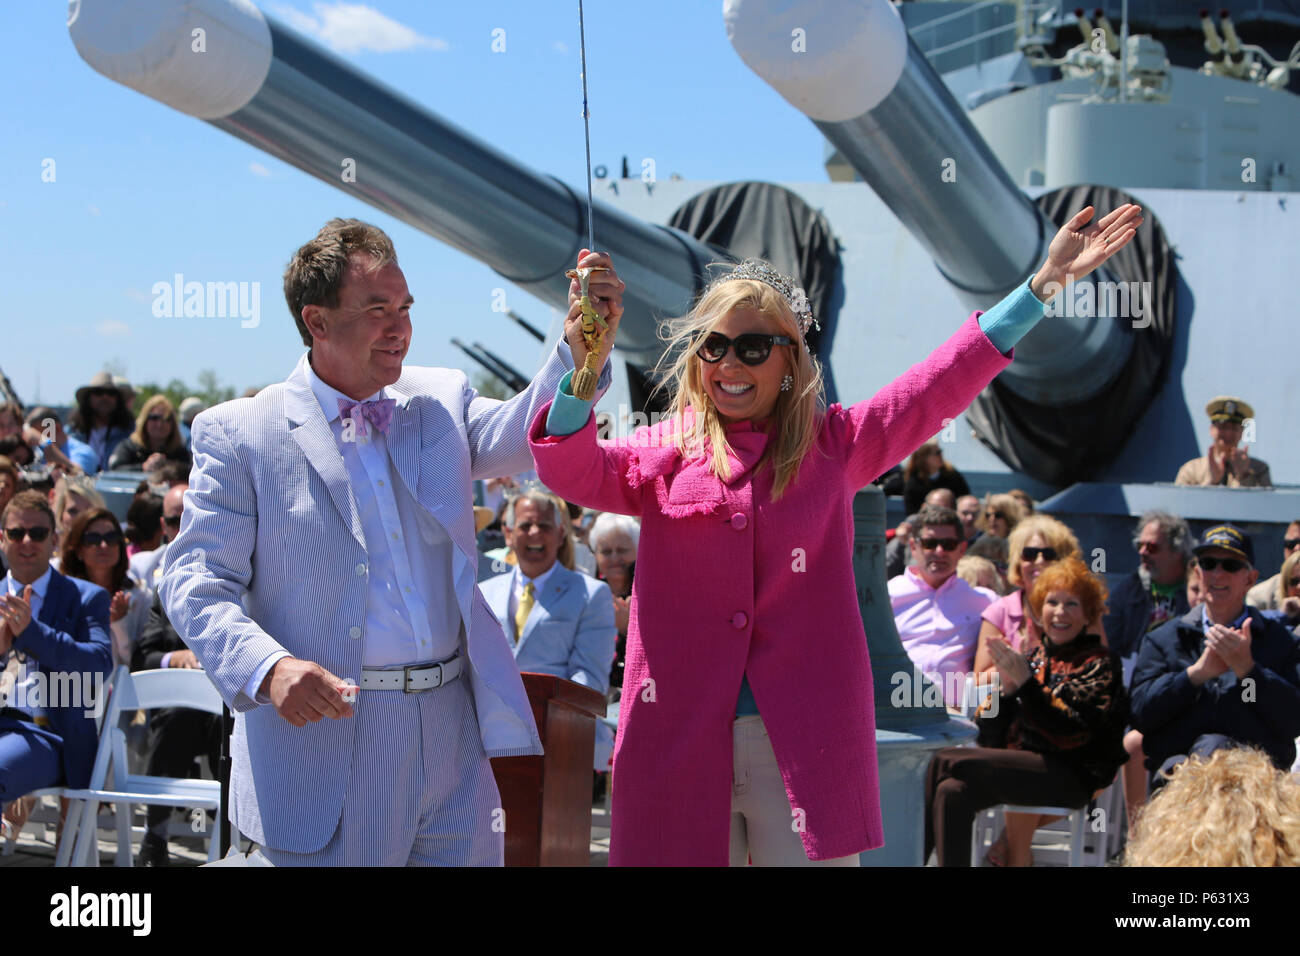 Anna Kooiman, Queen of the Azalea Festival, rejoices after cutting the ceremonial cake with the naval officer's sword, kick-starting the celebration of the 75th anniversary of the USS North Carolina (BB-52) Battleship's commissioning in Wilmington, N.C., April 9, 2016. Marines and sailors from 2nd Tank Battalion and other 2nd Marine Division units volunteered to work with museum staff and members of Living History to give real-life experiences to guests partaking in the festivity. (U.S. Marine Corps photo by LCpl. Miranda Faughn/Released) Stock Photo